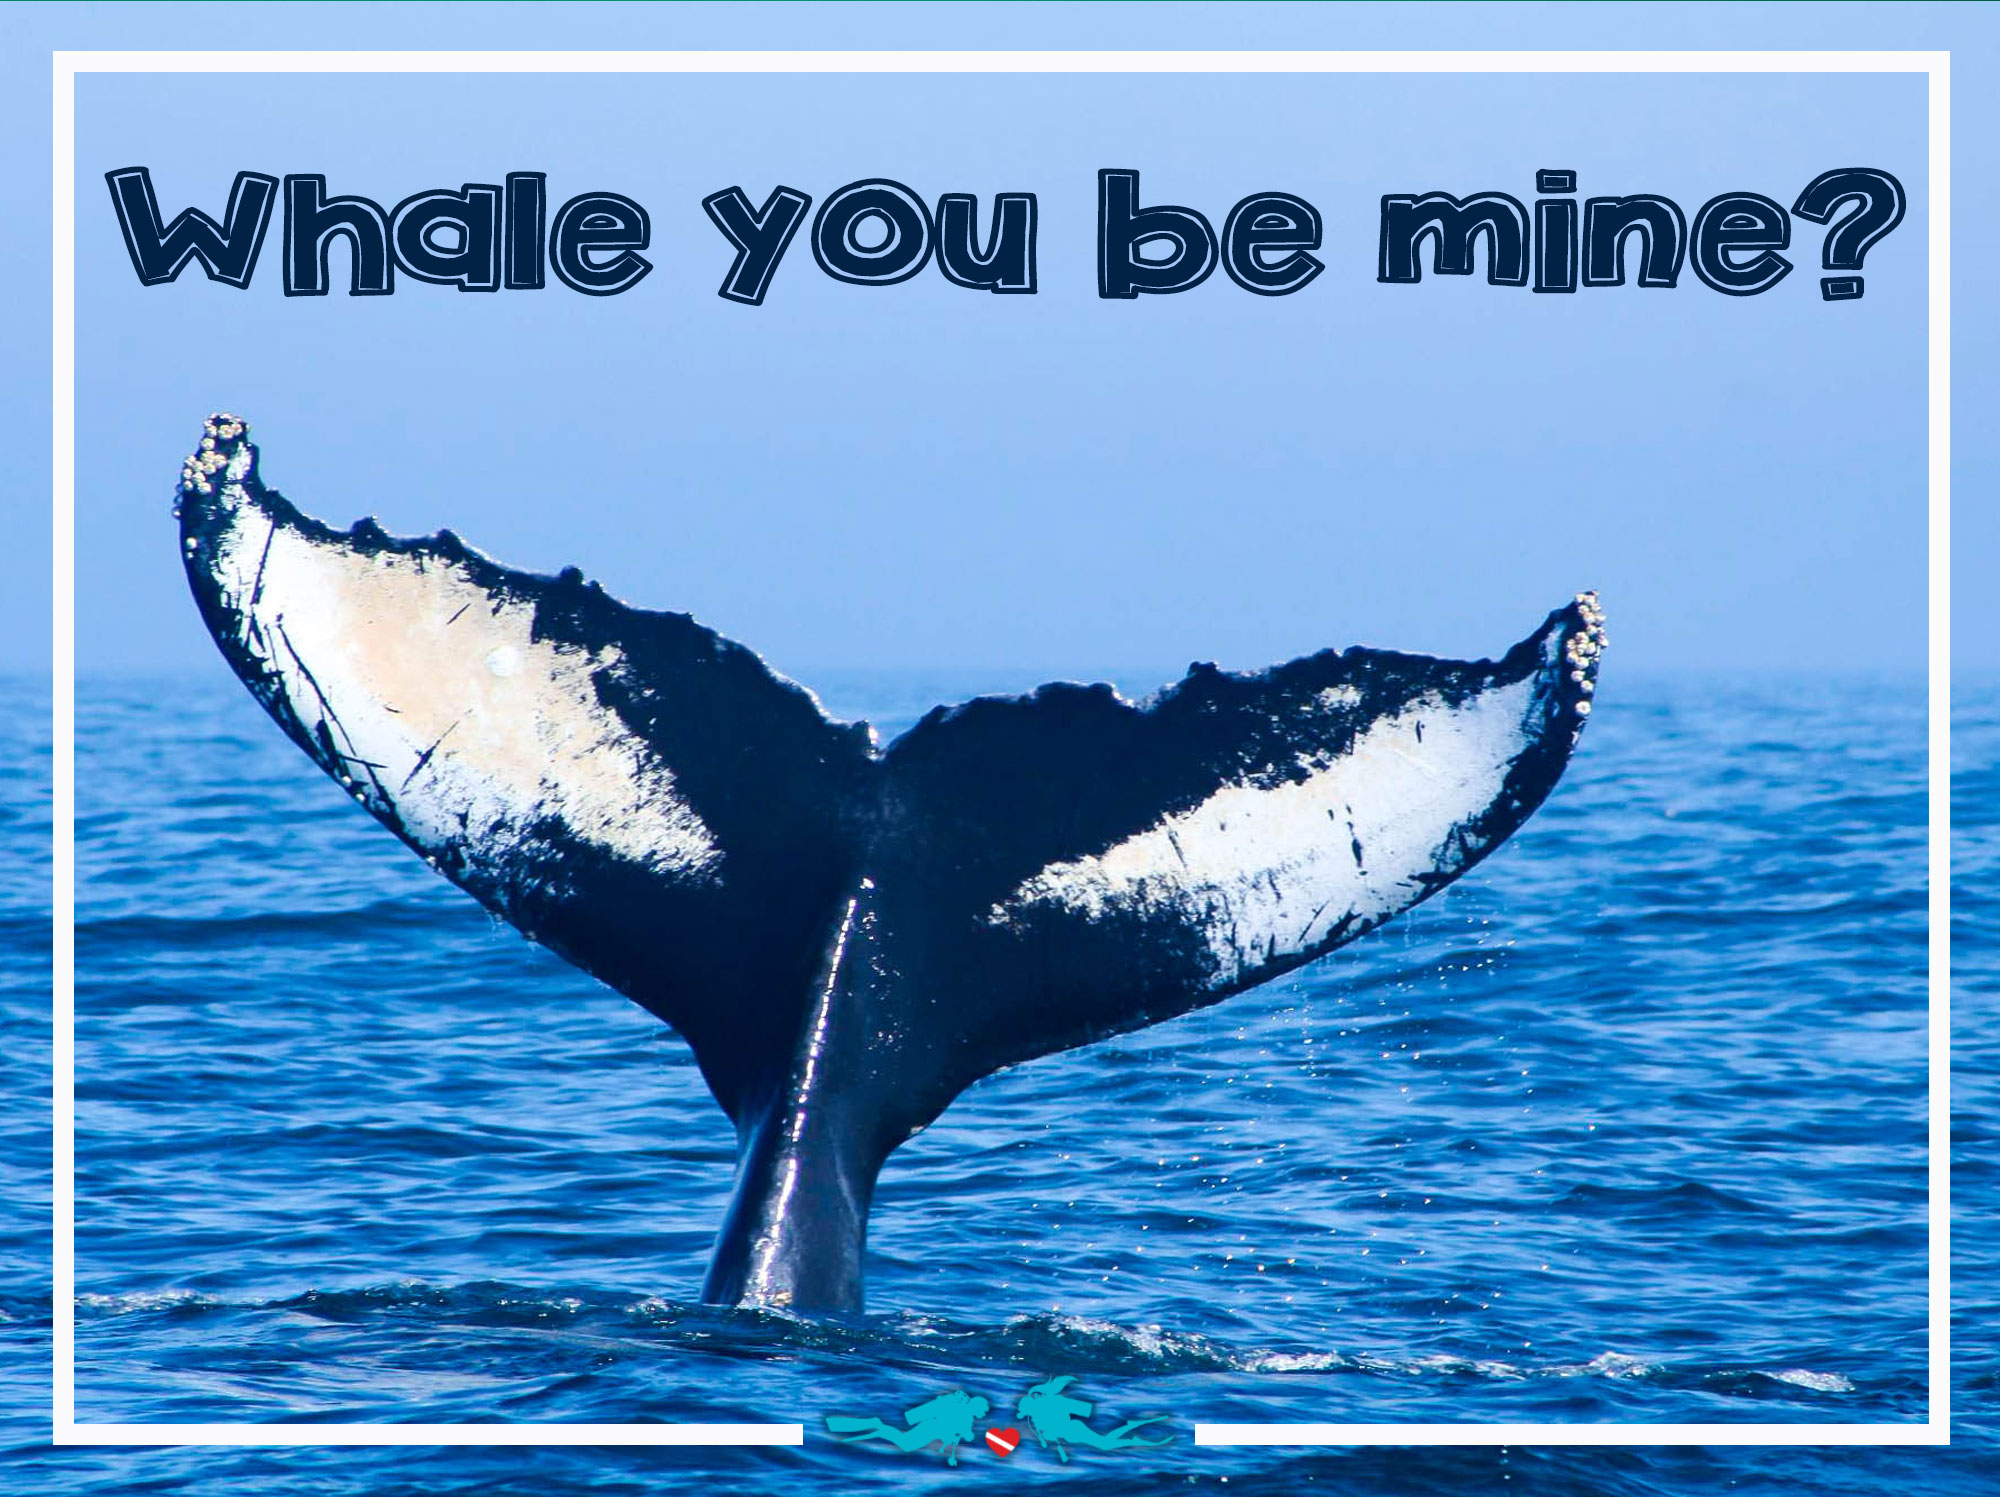 Whale You Be Mine Valentine's Day Scuba Diving Quote